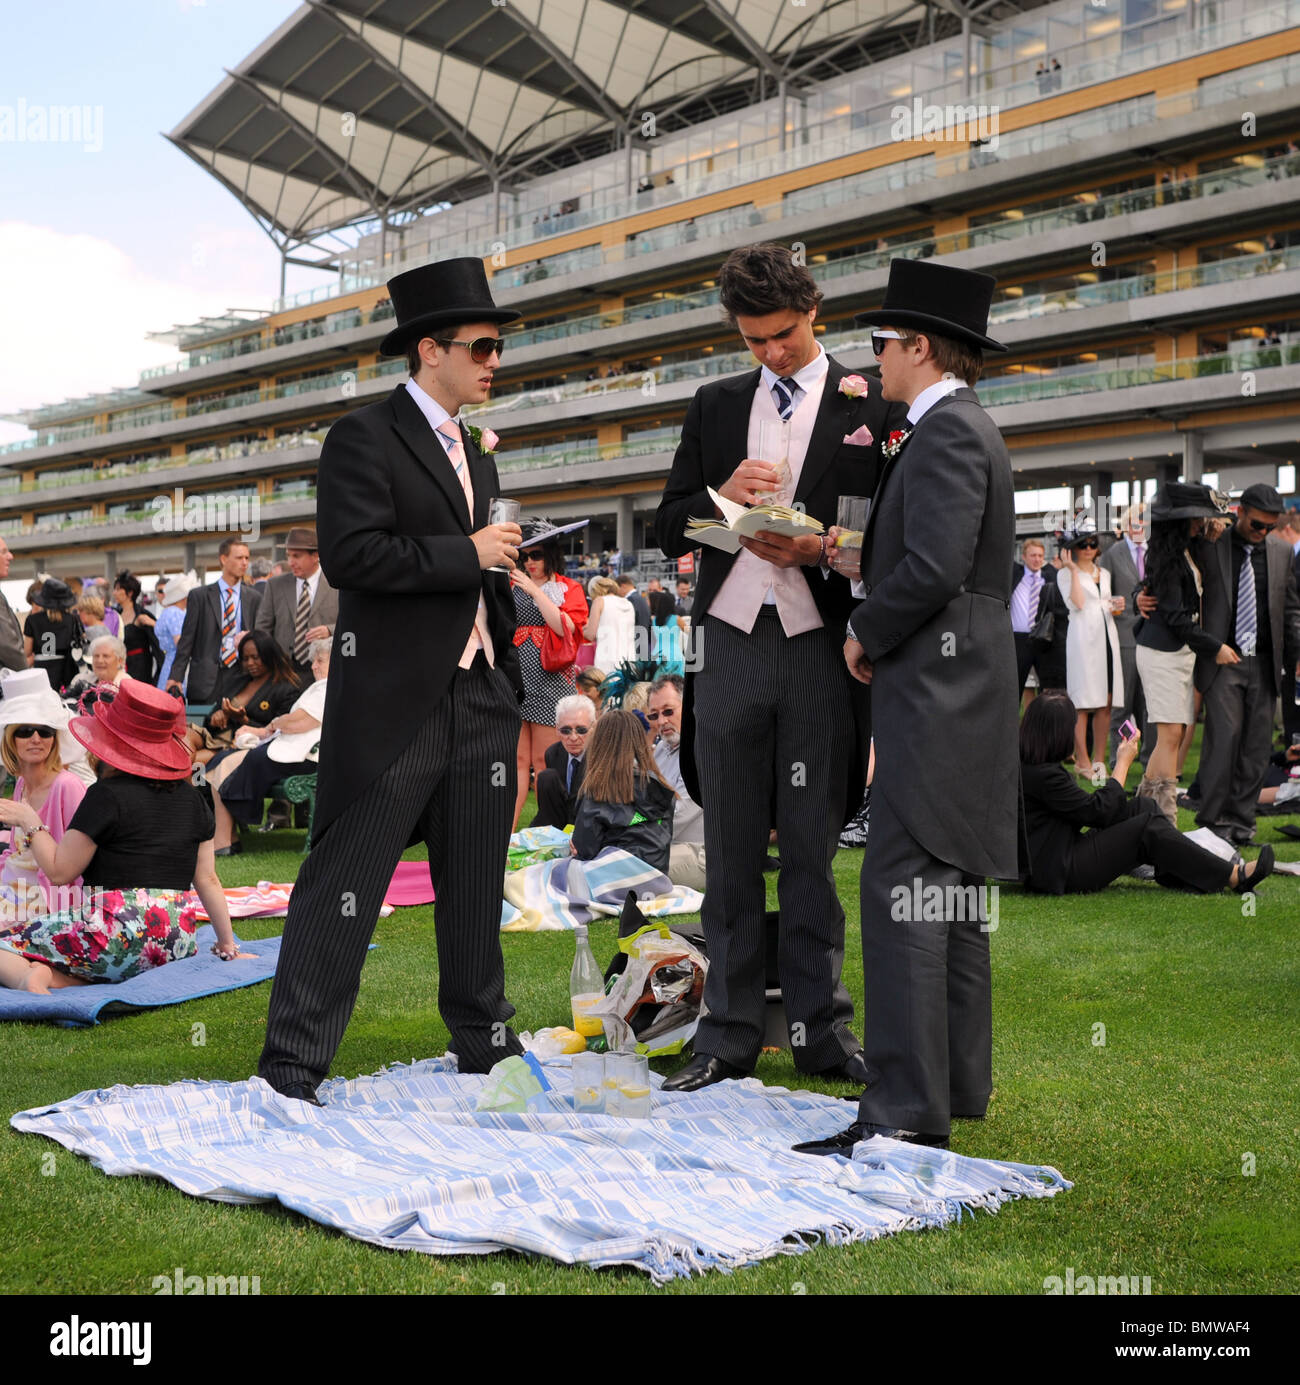 Royal Ascot Horse racing Berkshire - Racegoers wearing Morning Suits in front of the Grandstand - Stock Image